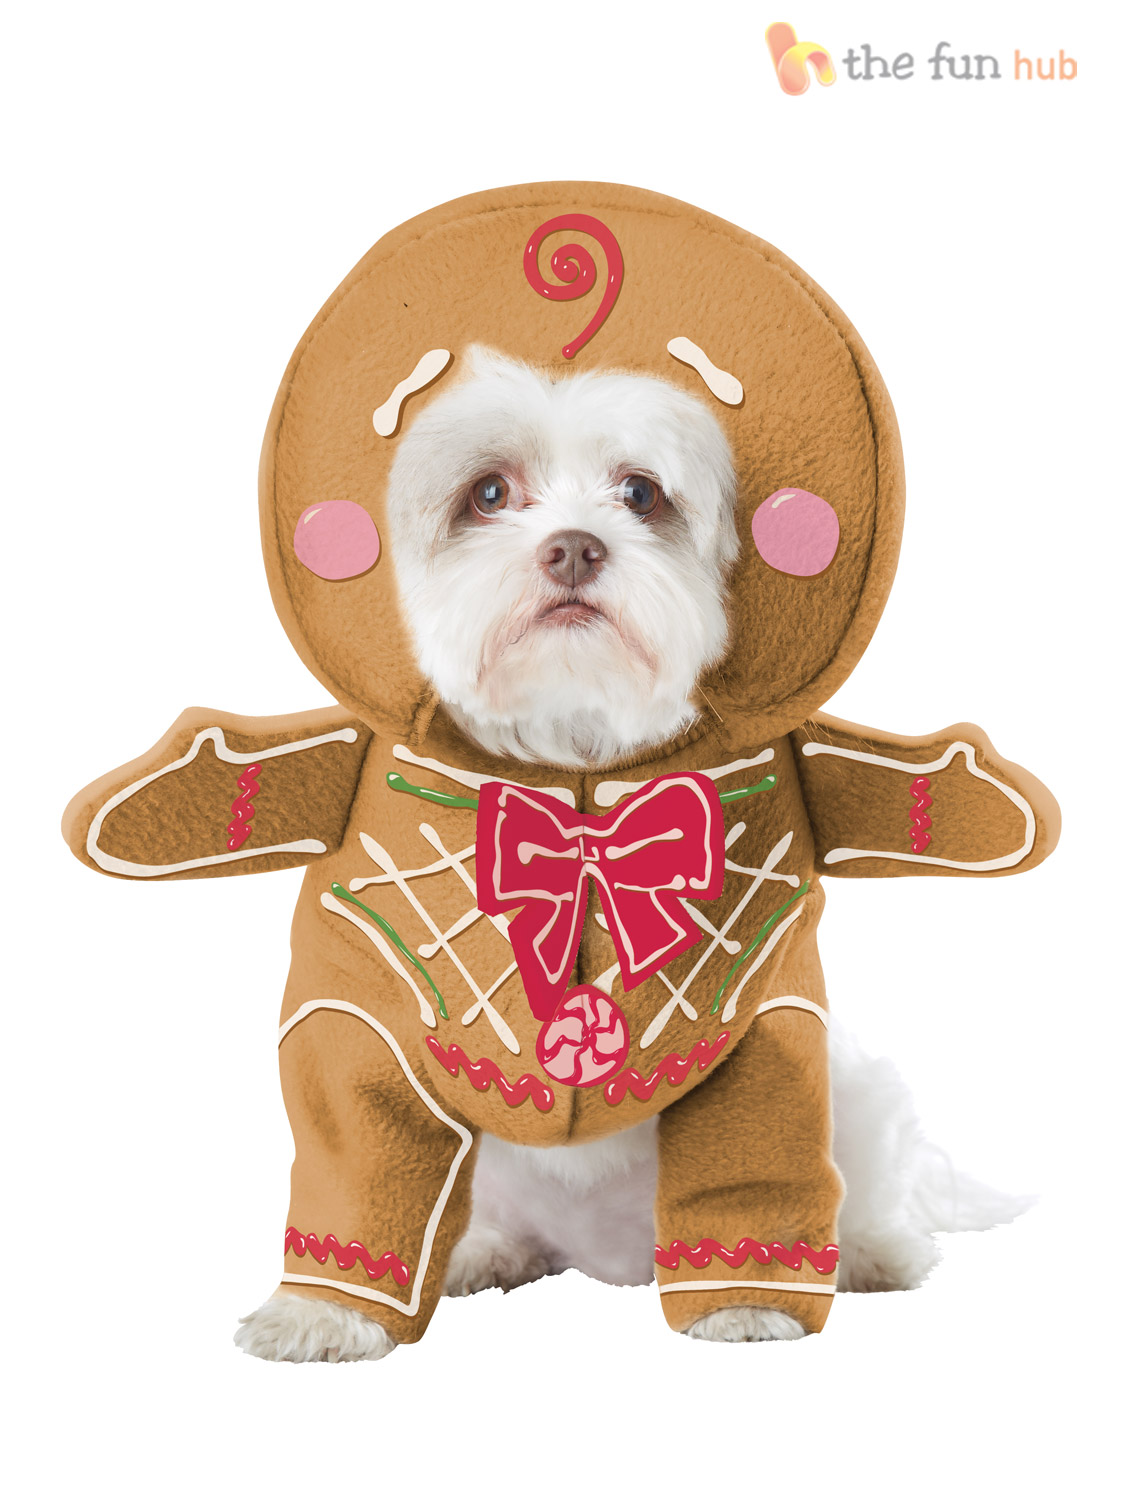 Christmas Fancy Dress Funny.Dog Christmas Fancy Dress Costumes Santa Elf Funny Pet Cat Outfit Clothes Gift